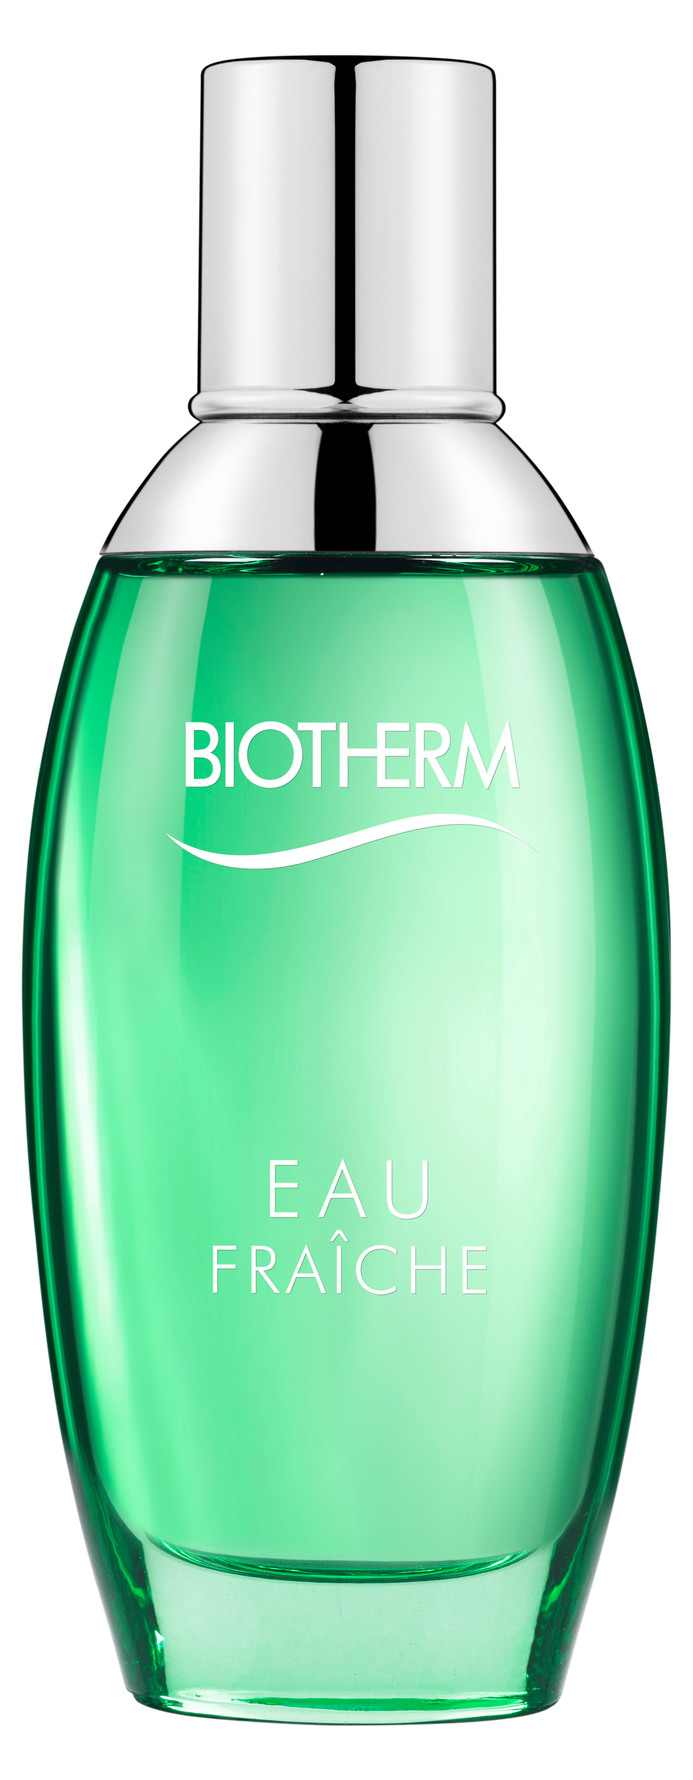 biotherm eau fraiche eau de toilette edt 50 ml. Black Bedroom Furniture Sets. Home Design Ideas